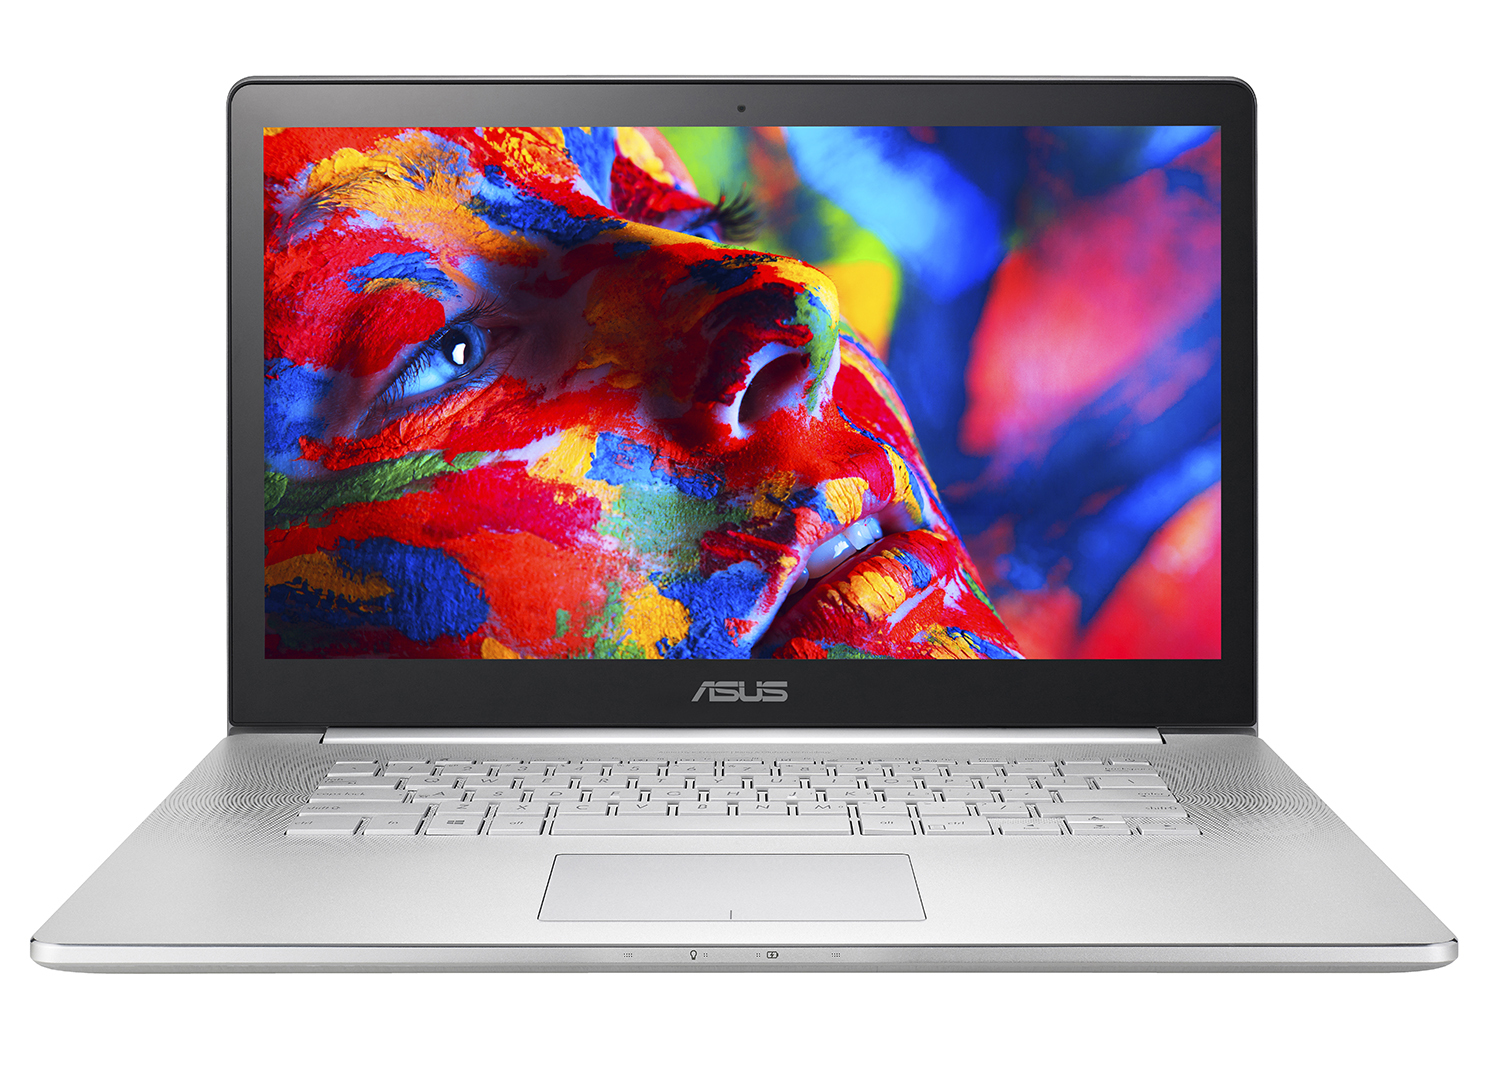 ASUS Zenbook NX500 featuring Nanosys QDEF ™ color enhancing Quantum Dot display technology for vivid colors, high brightness and long battery life.